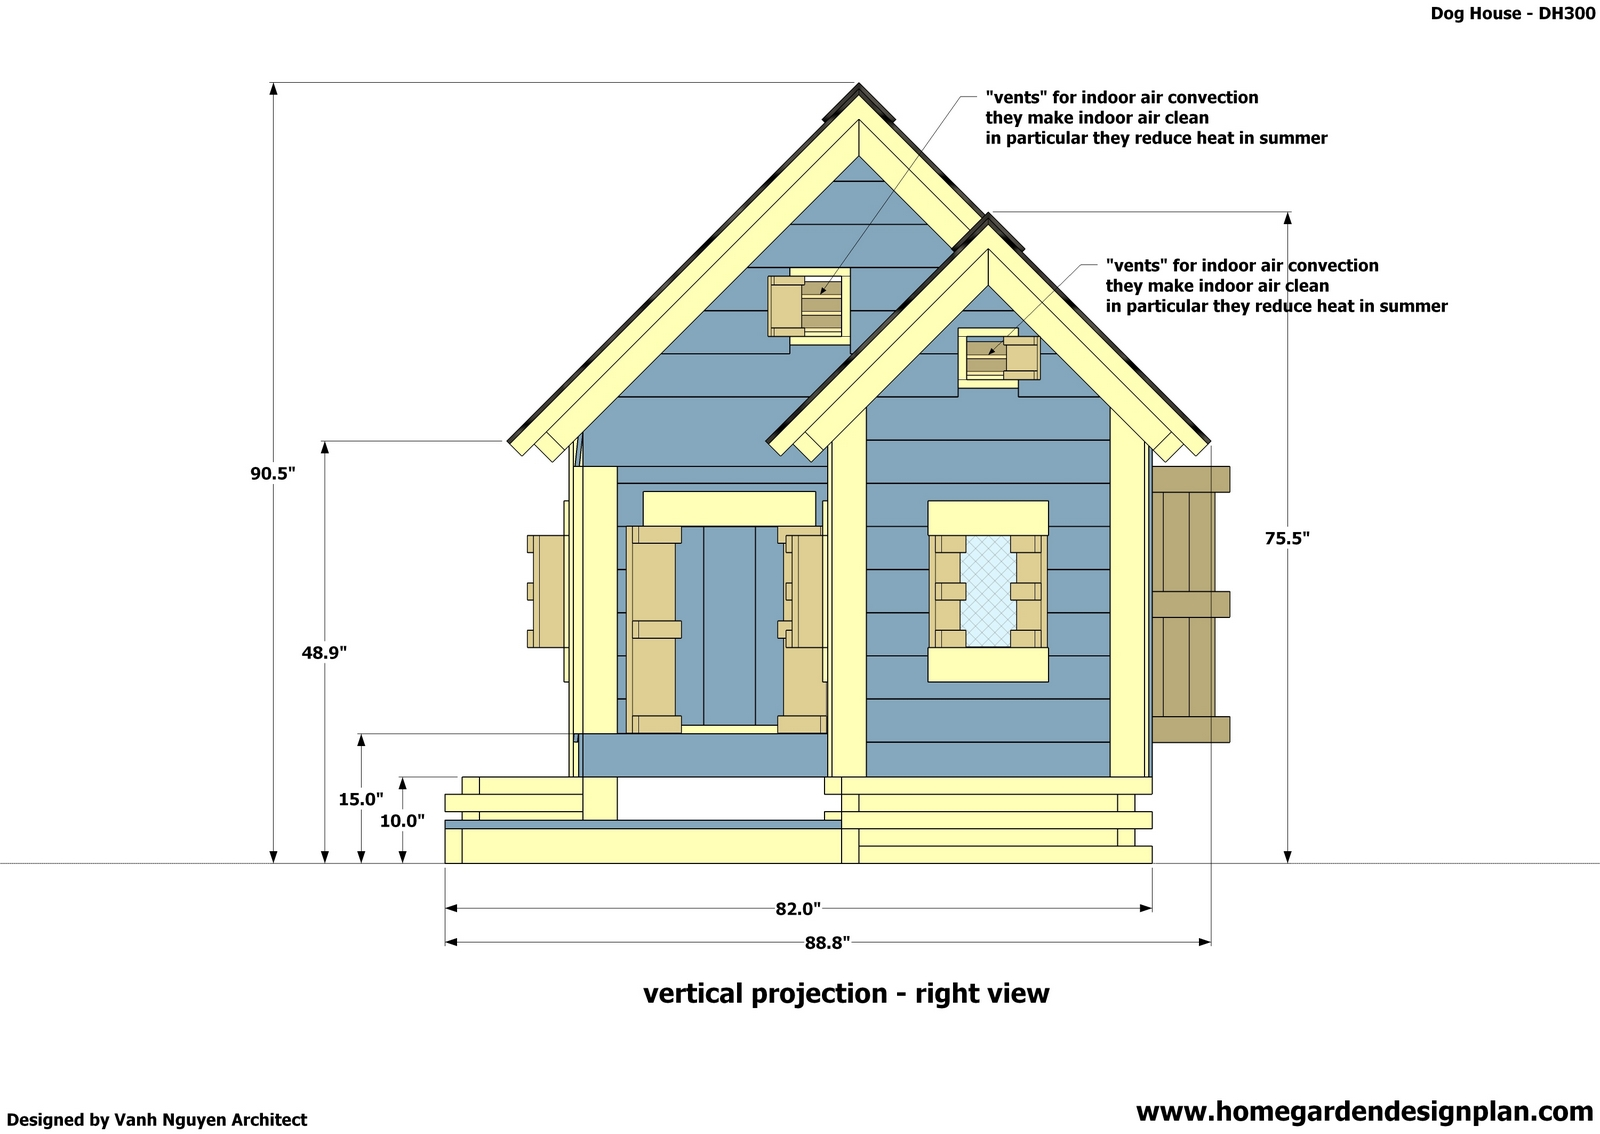 Home garden plans dh300 dog house plans free how to build an insulated dog house Build a house online